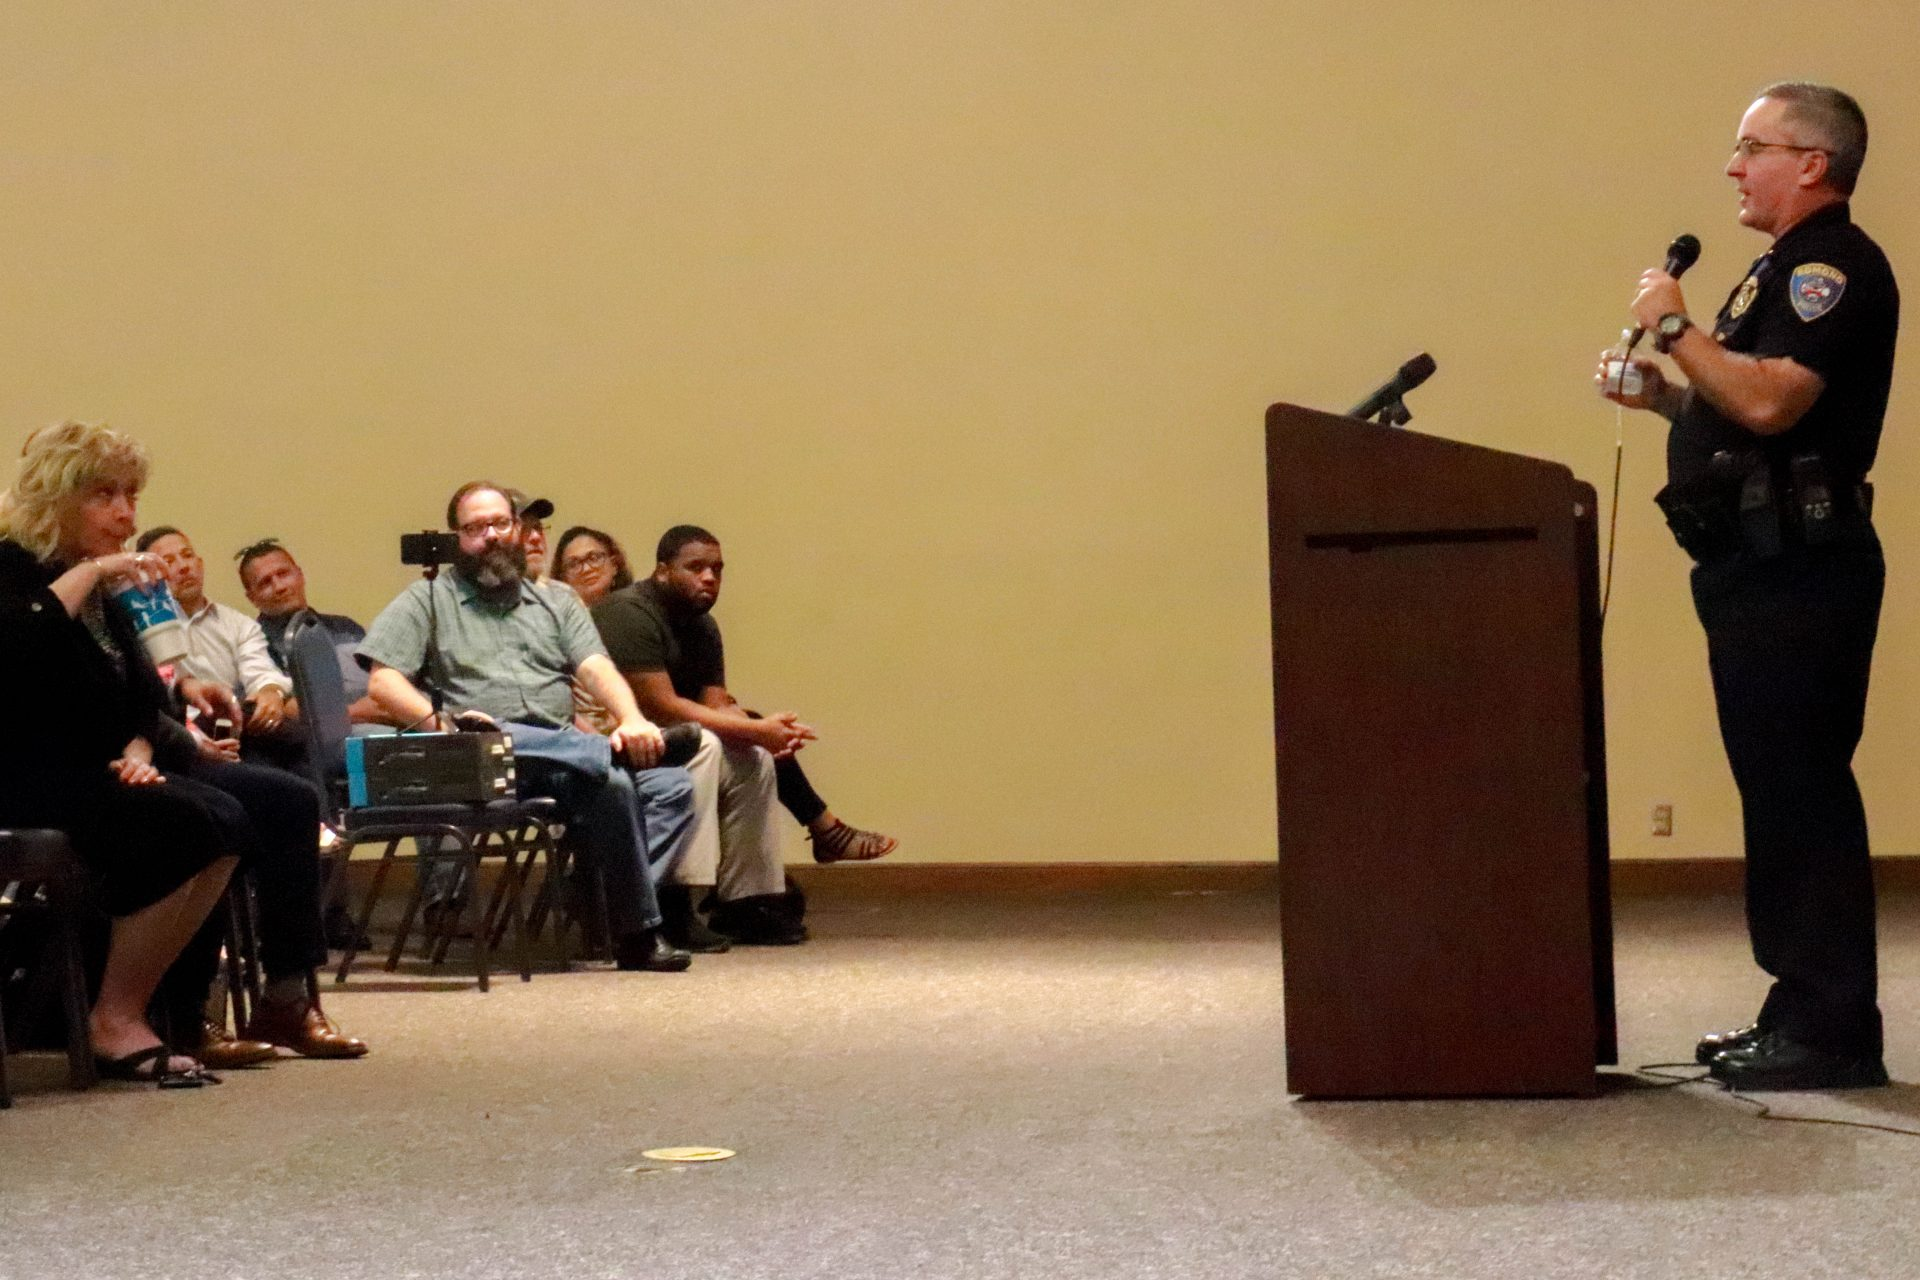 An Edmond police officer stands at a podium and answers audience questions inside an auditorium.